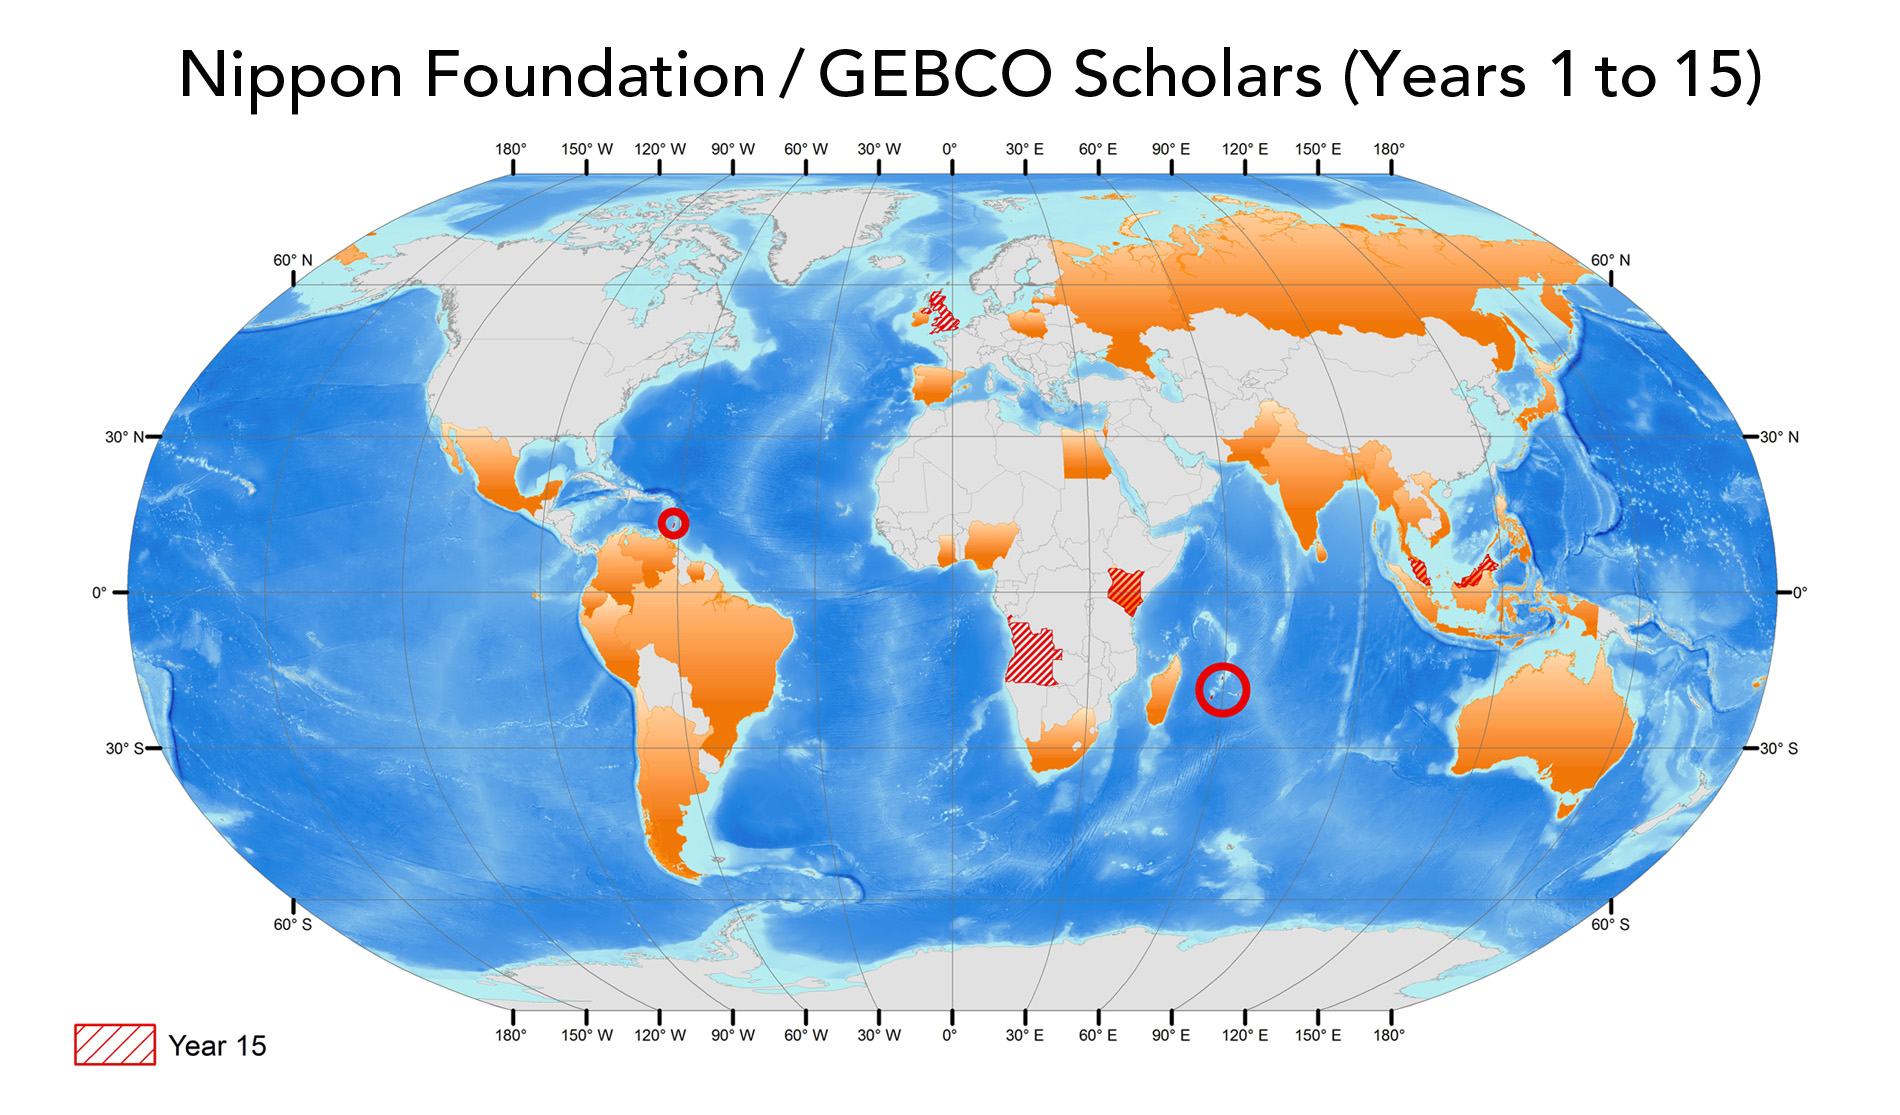 World map showing countries of GEBCO scholars in orange; current year in red.